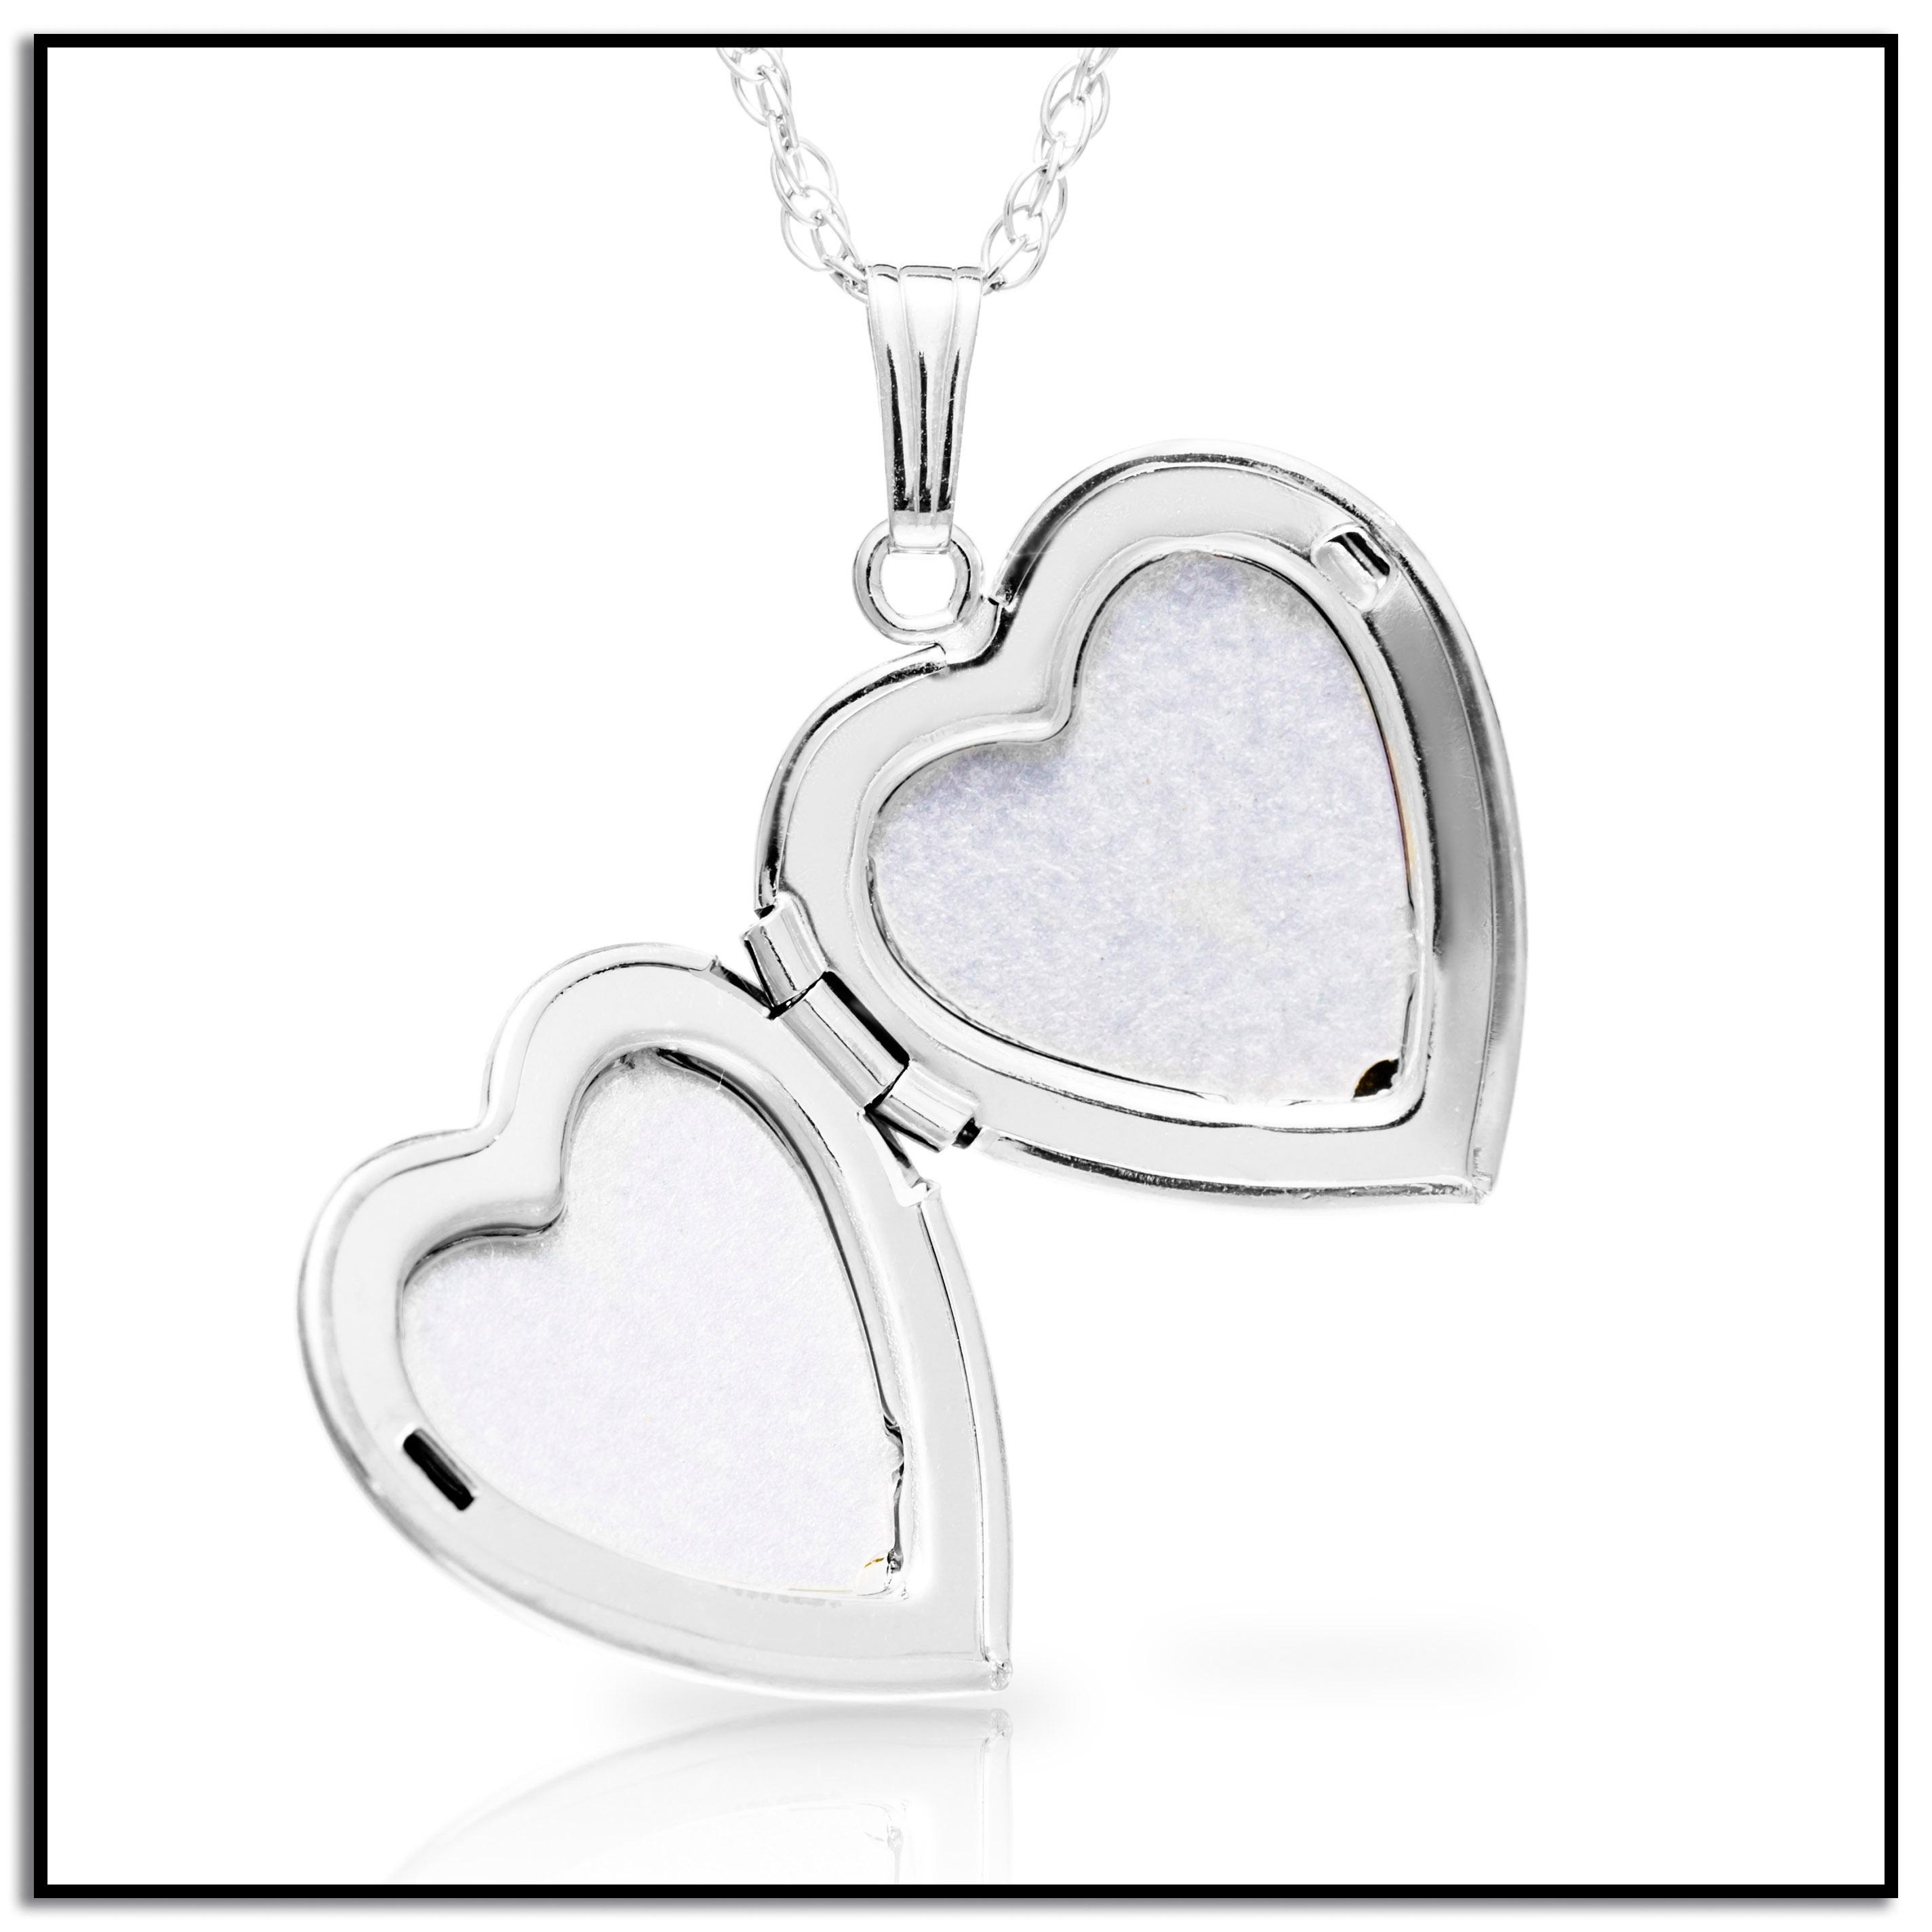 piece jewelry qlt steel wid hei coast stainless heart two prod west necklace necklaces p